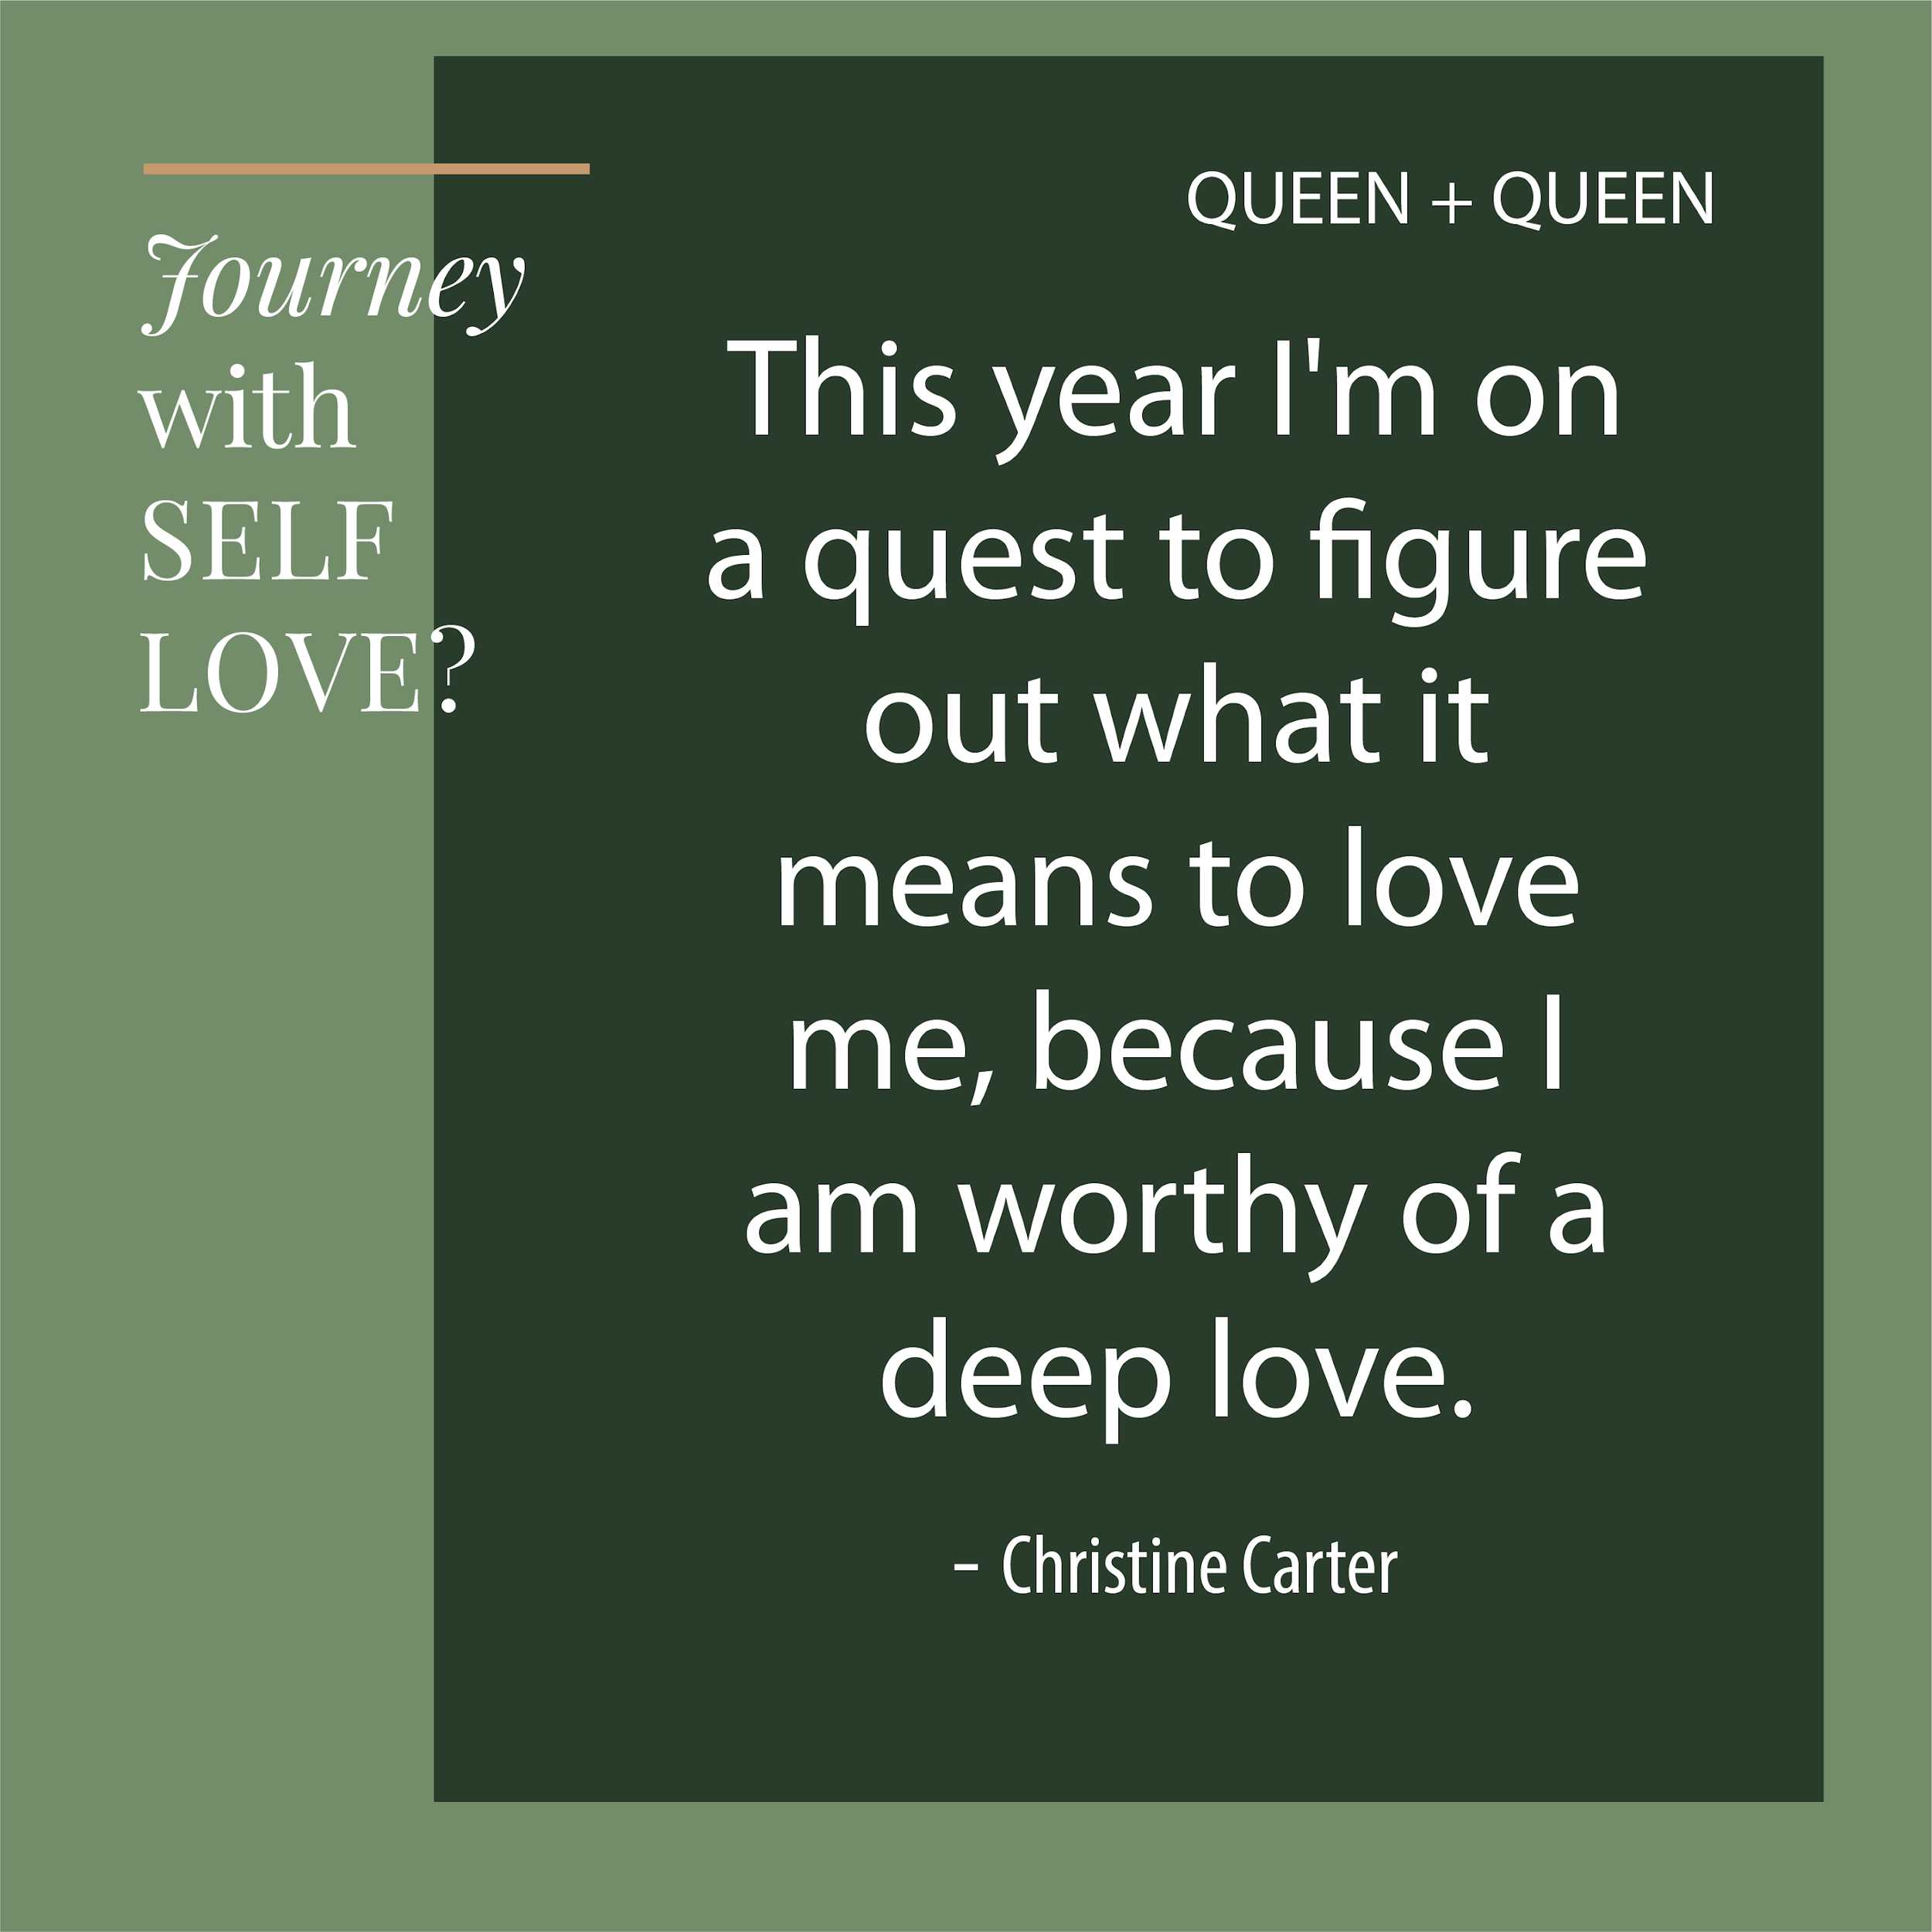 QueenPlusQueen_Christine Carter_beige_July 2019-03.PNG